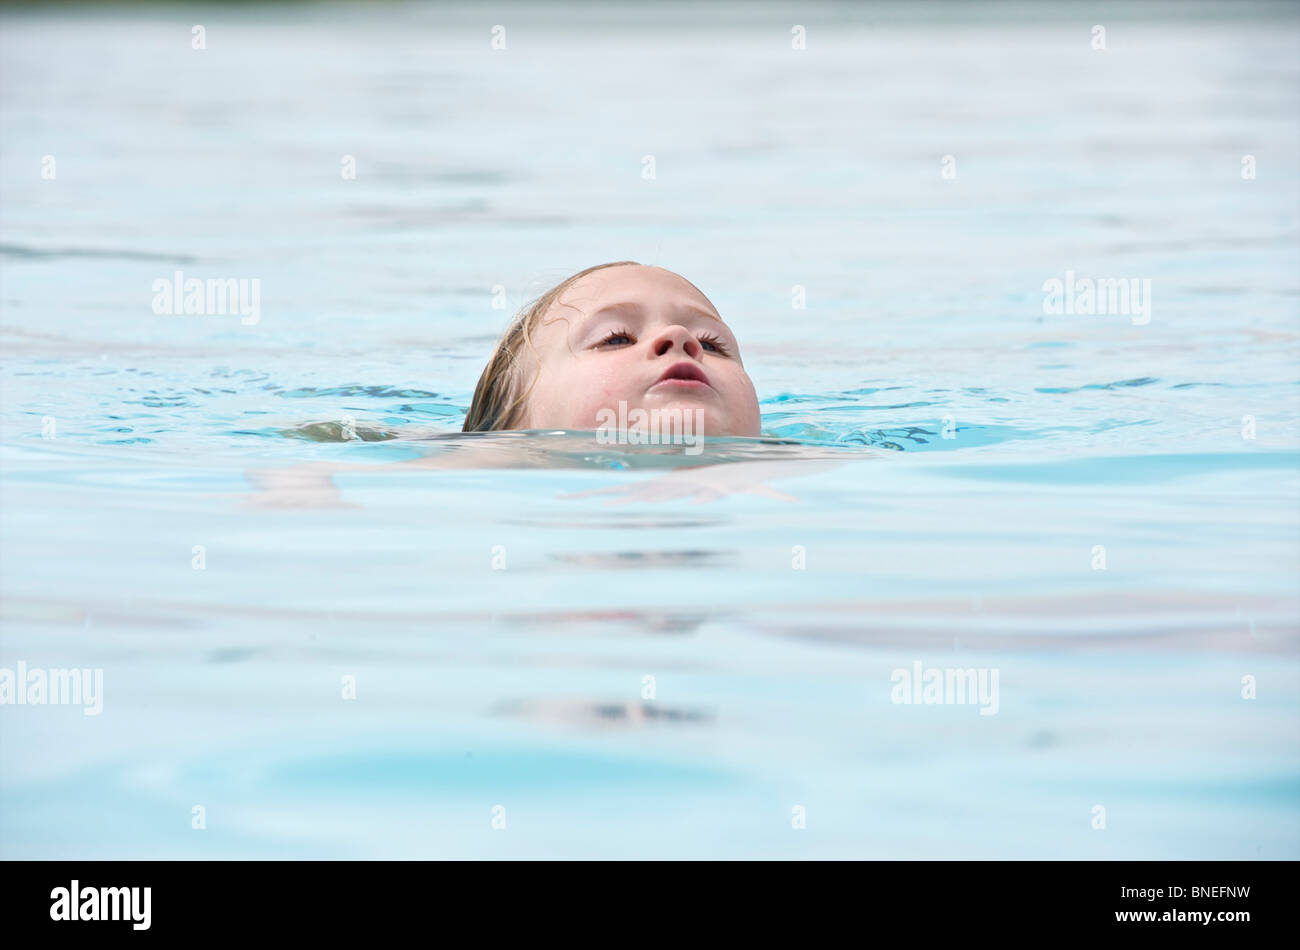 six year old girl struggling to keep her head above water in